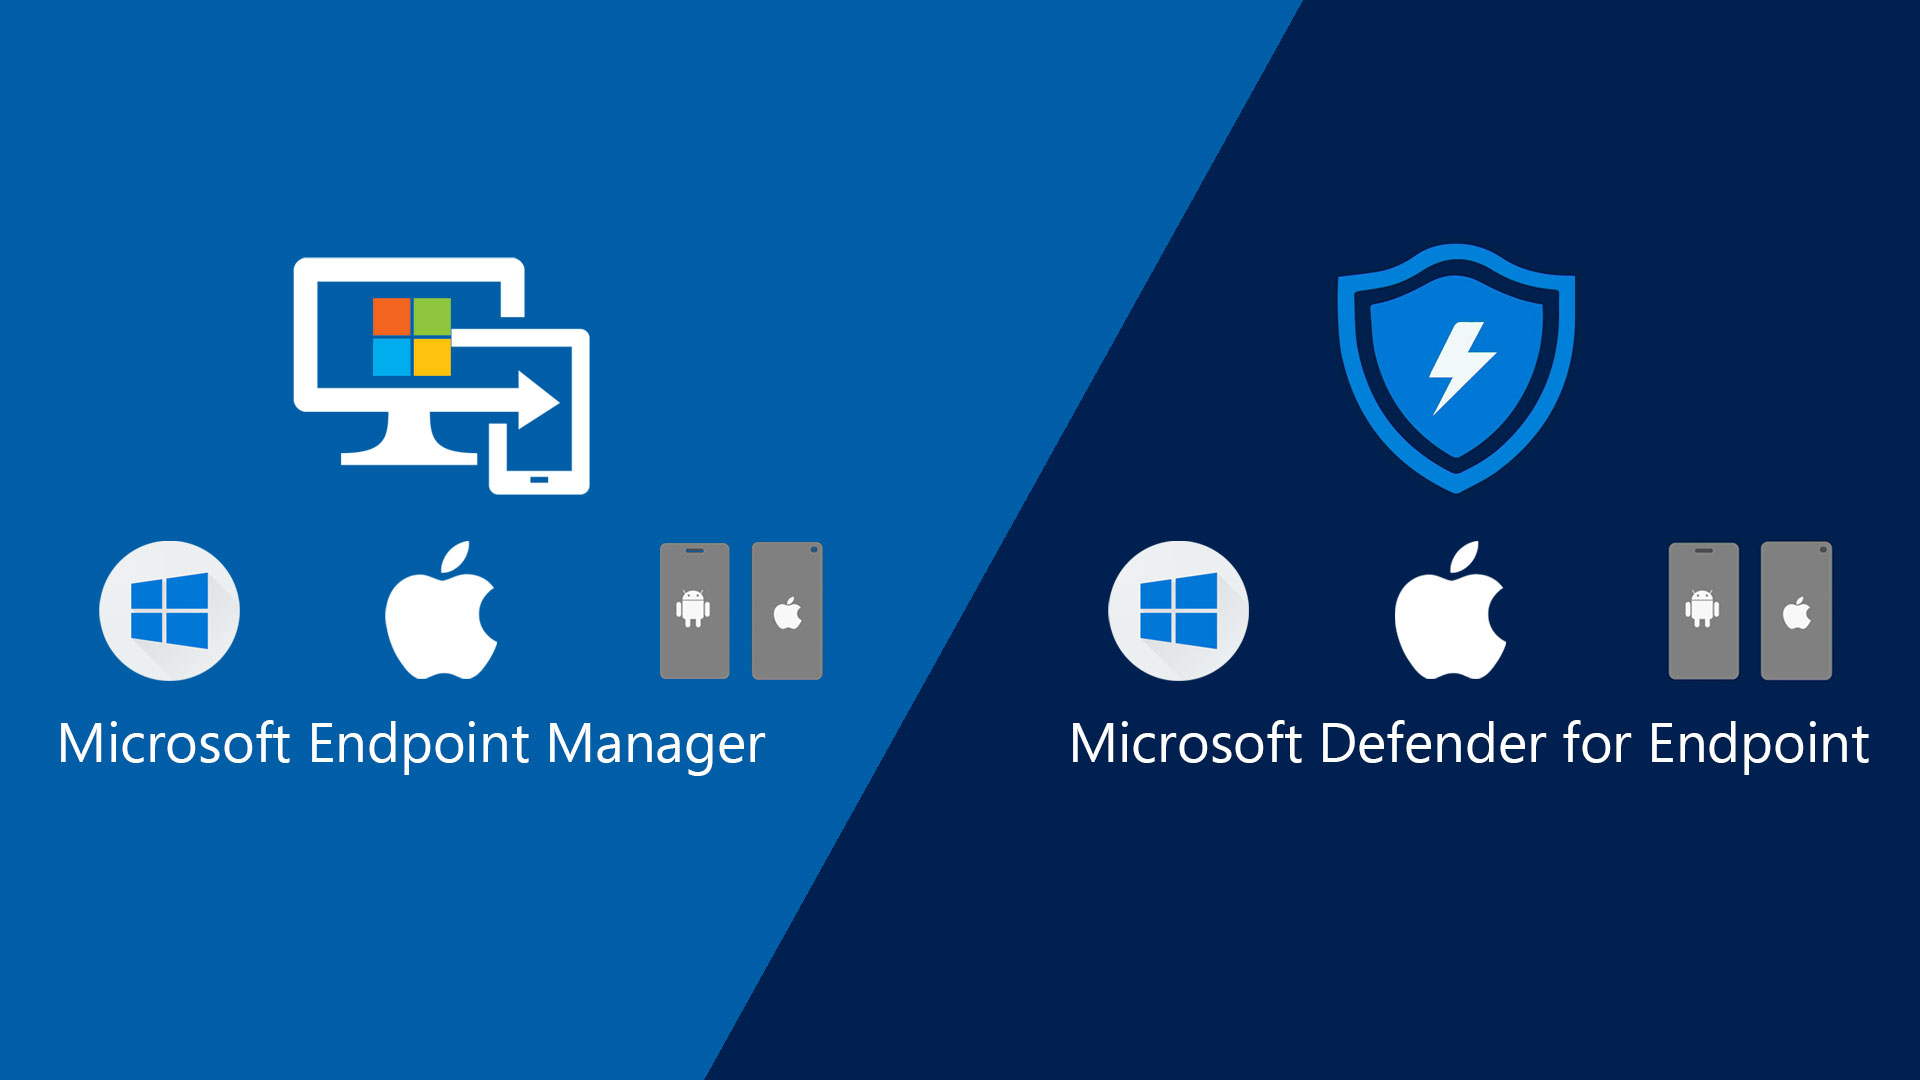 Microsoft Defender for Endpoint and Endpooint Manager